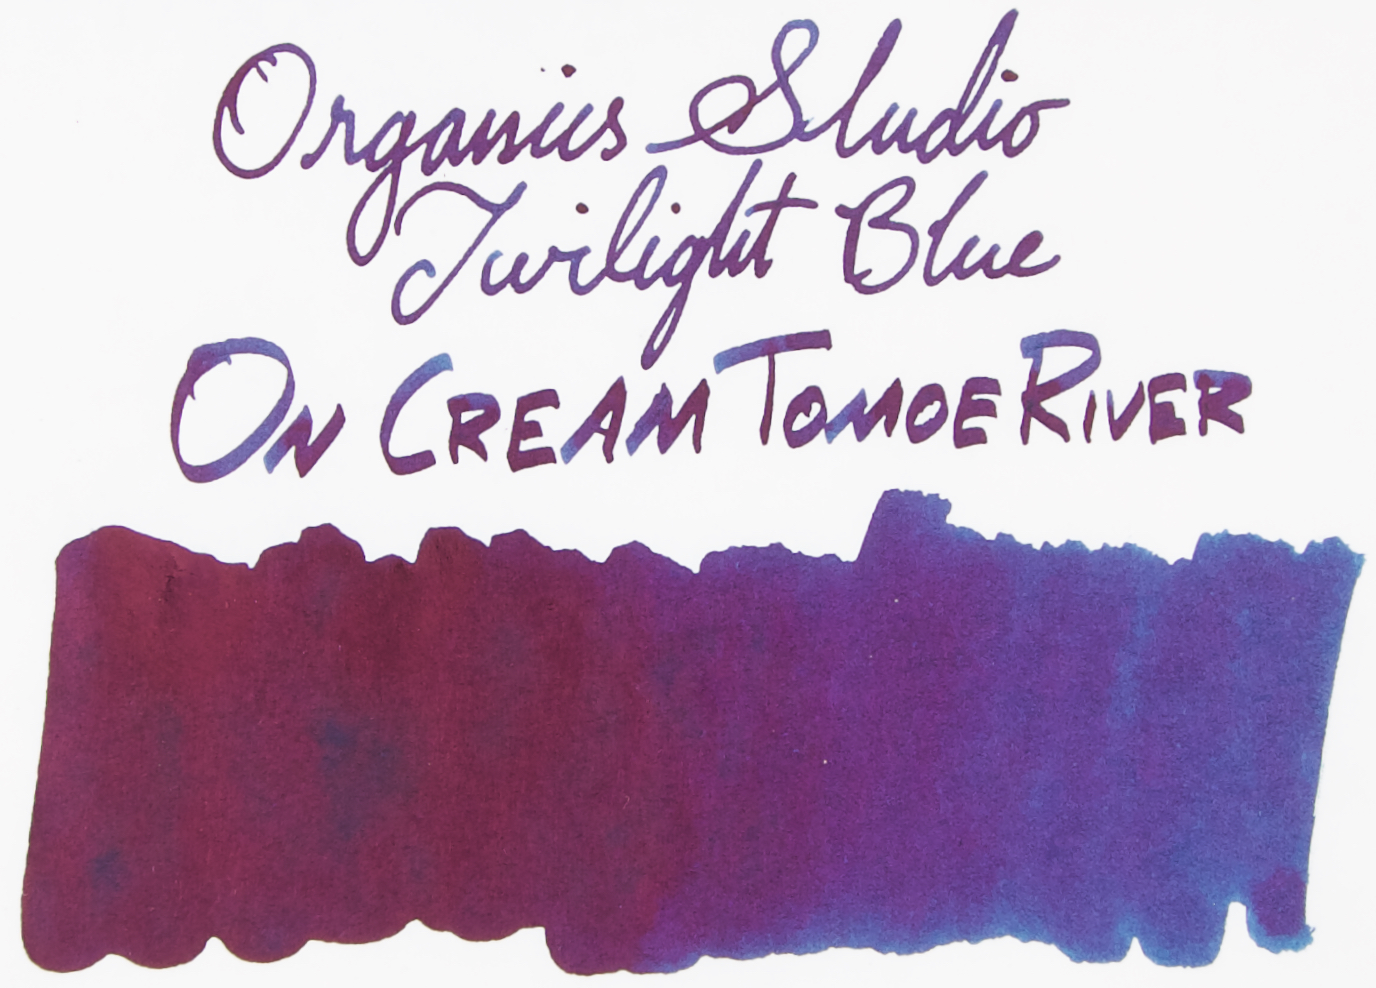 Tomoe River Cream .jpg